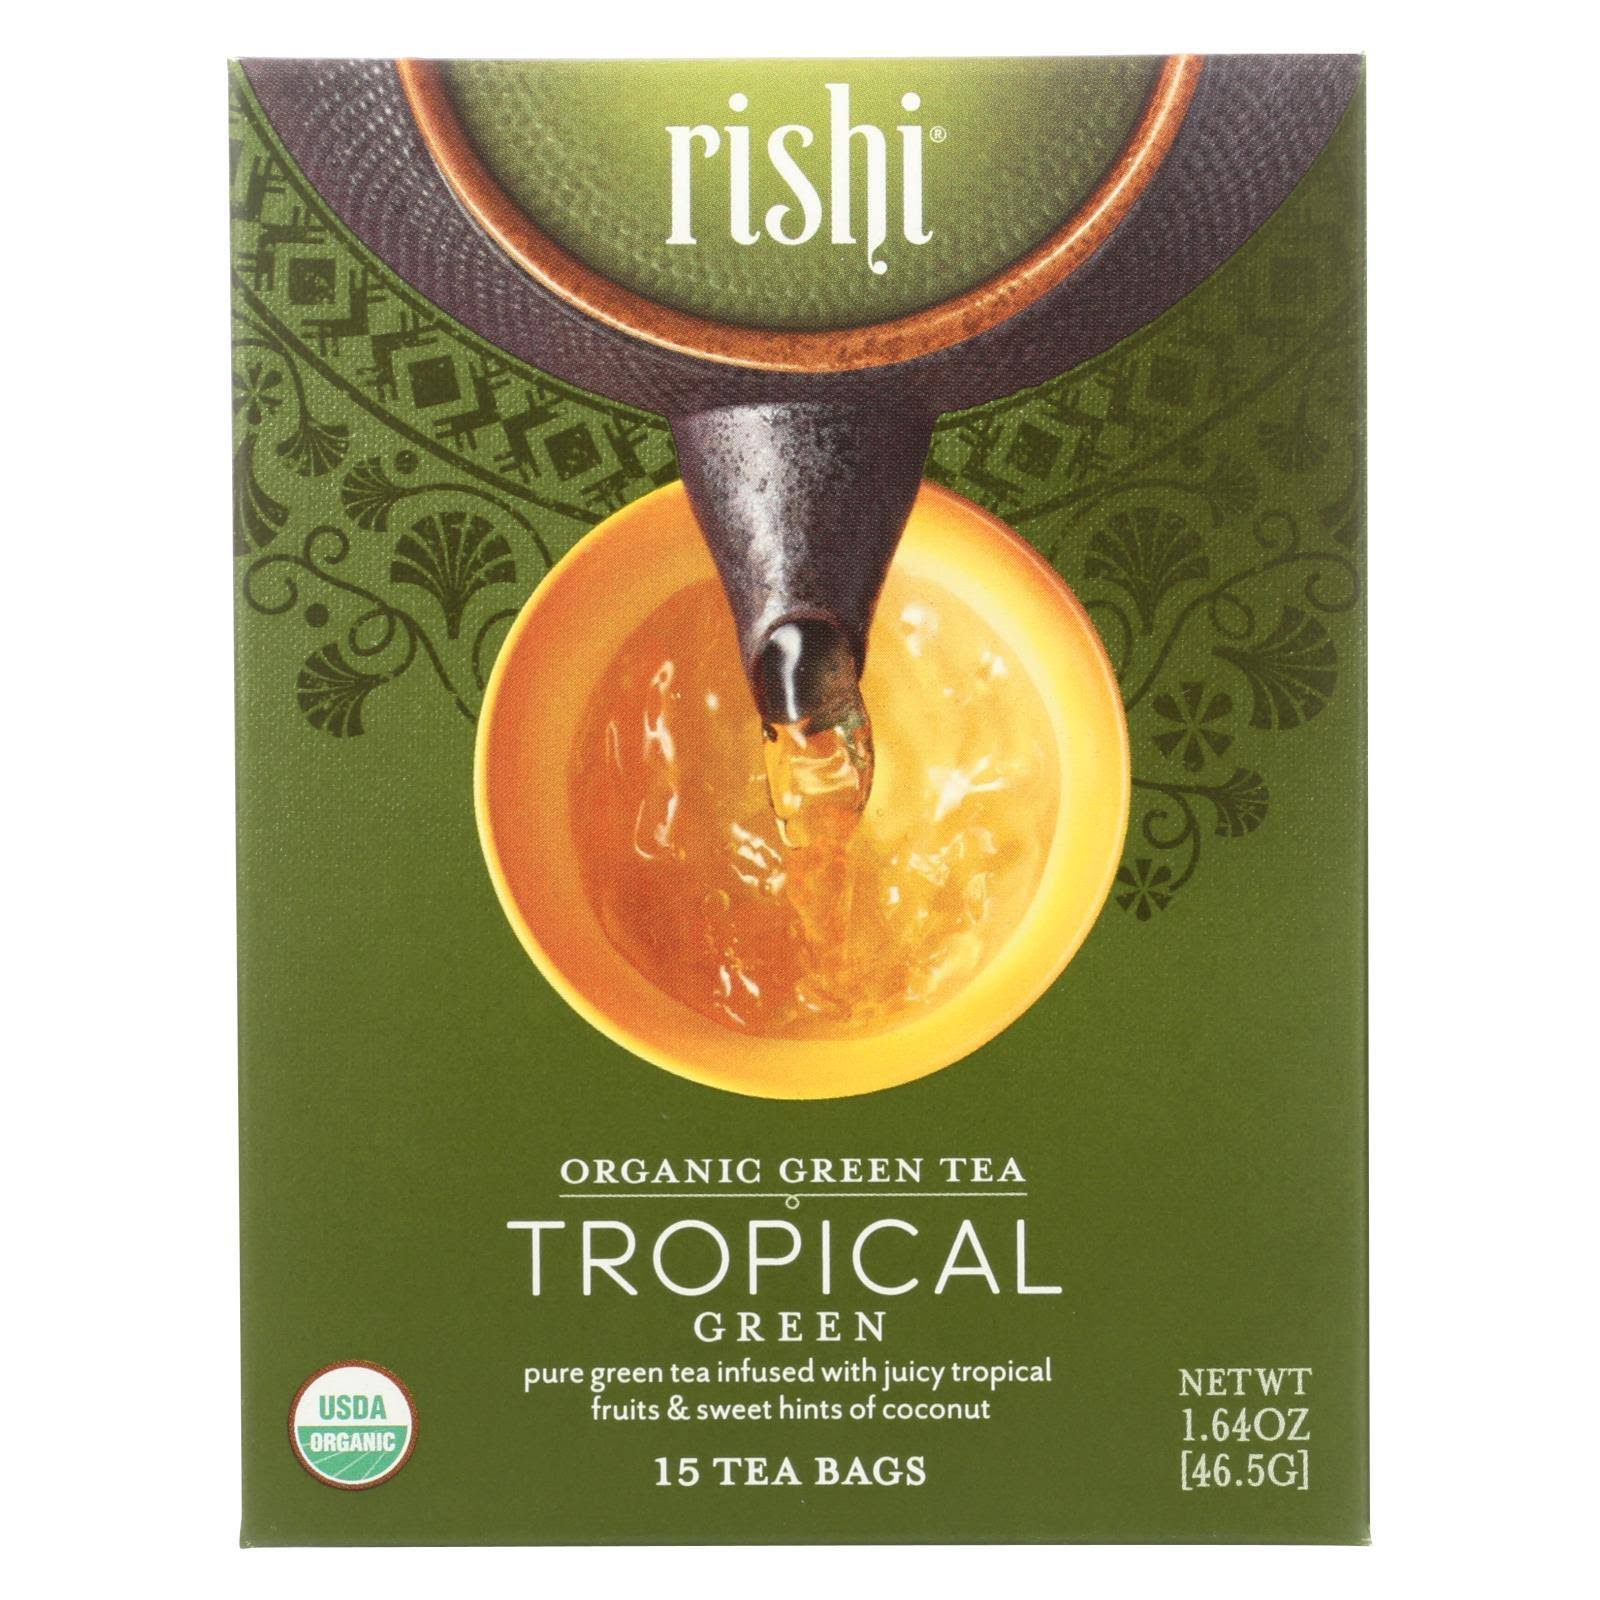 Rishi Tea Organic Green Tea - Tropical Green, 15 Tea Bags, 46.5g